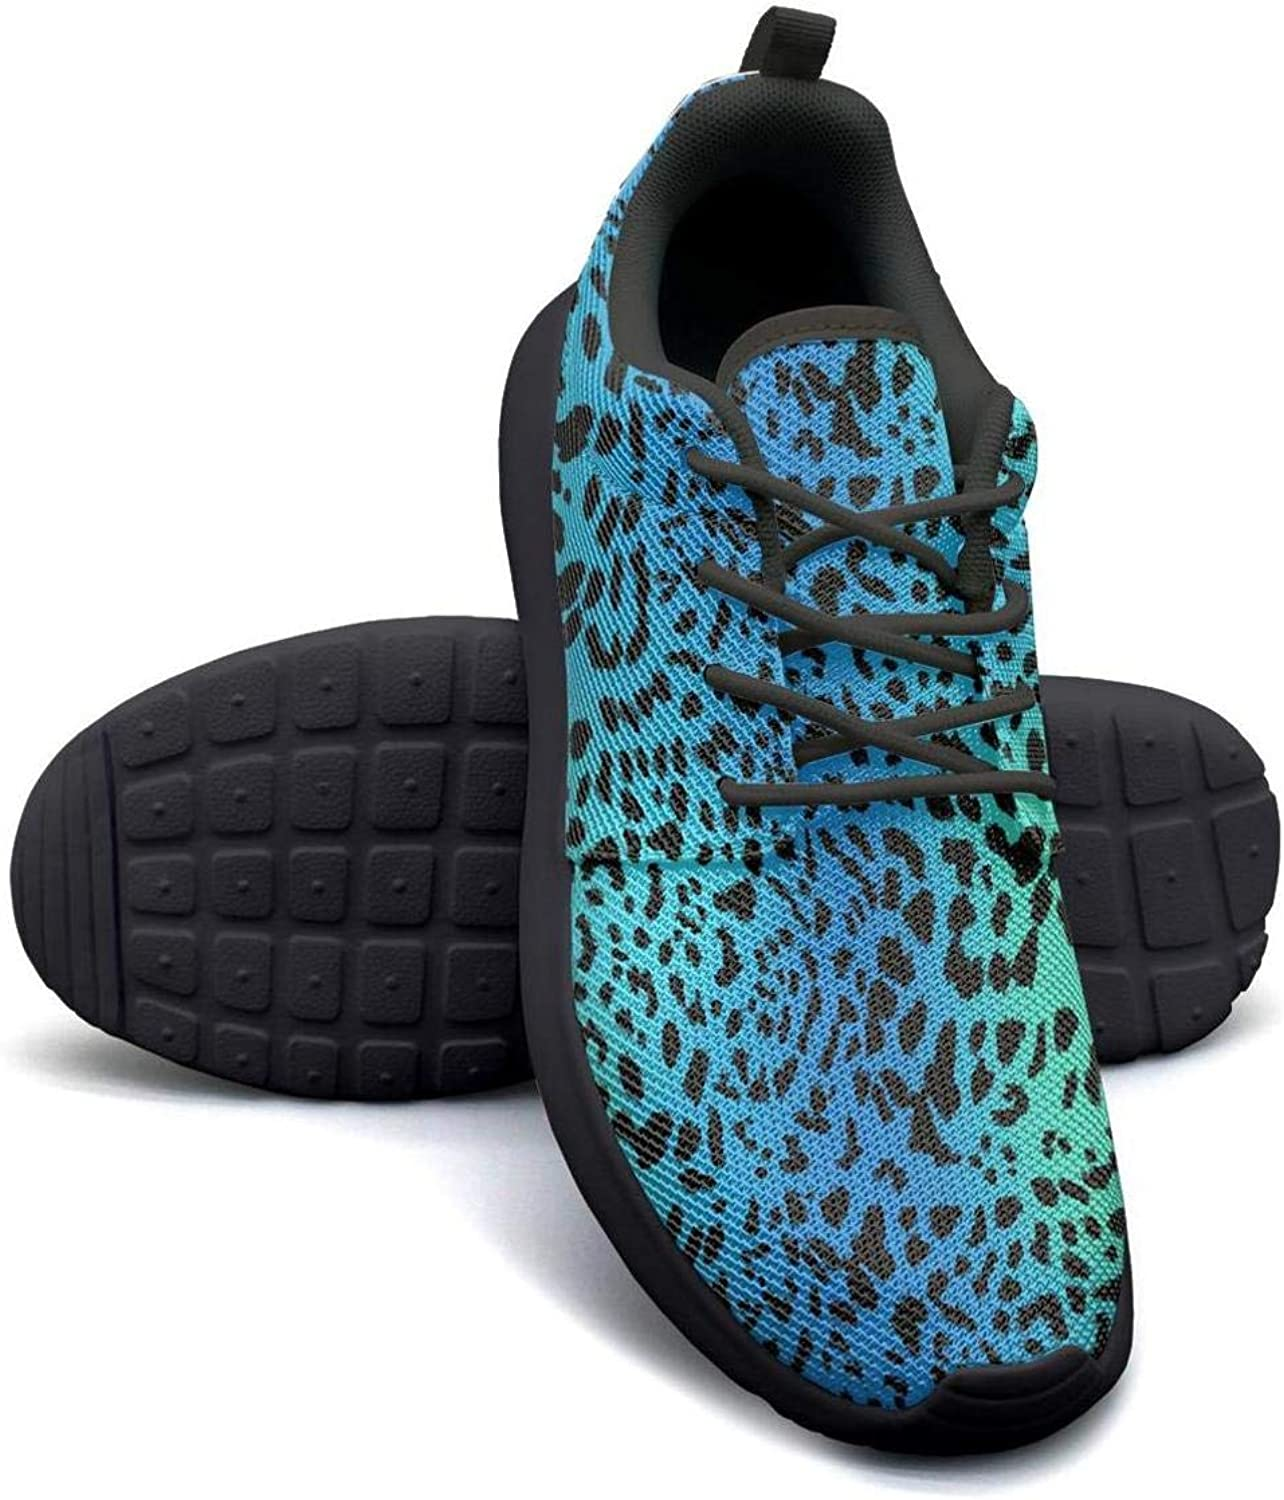 YSLC Leopard Cheetah Print Black Cream color Lightweight Running shoes for Women Sneaker Travel Soft Sole shoes